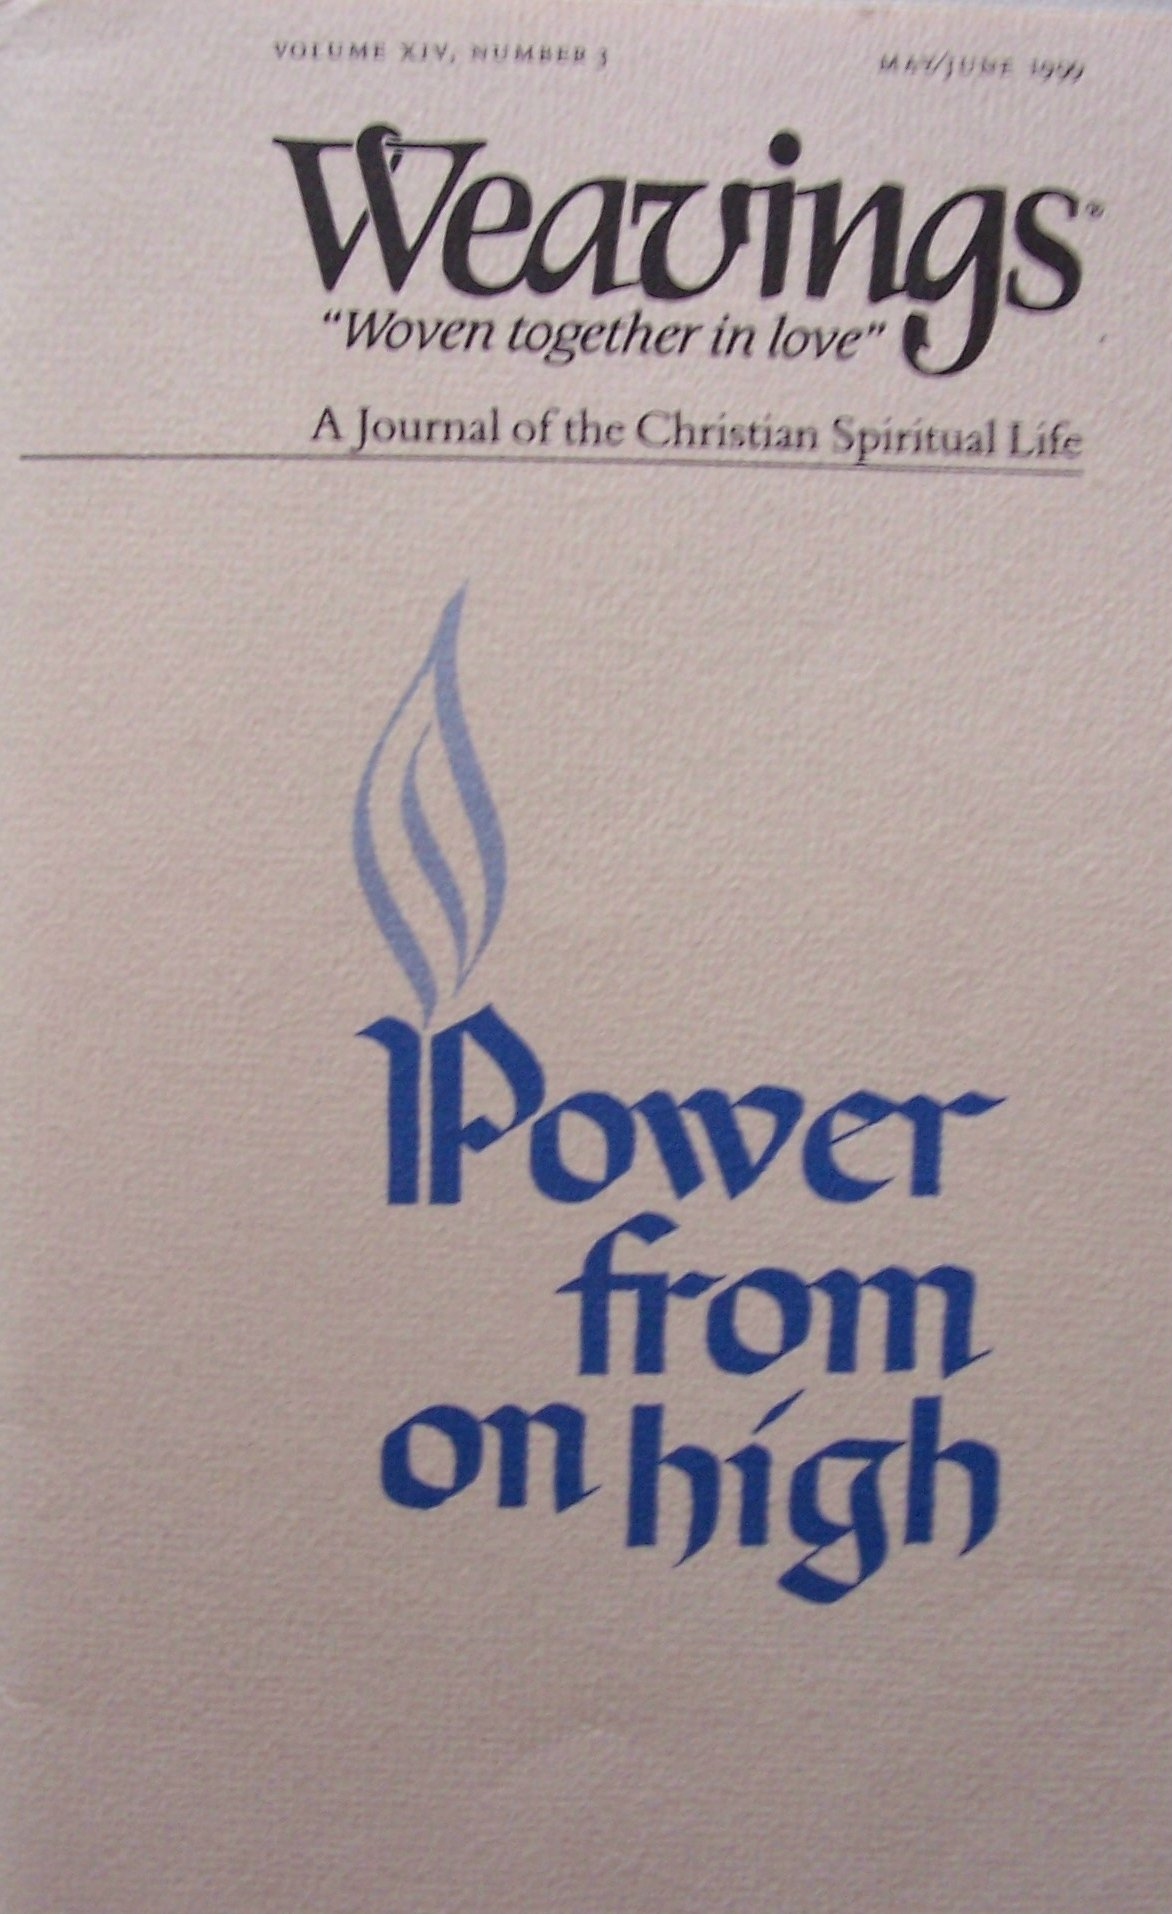 WEAVINGS [ May/Jun 1999, Vol. XIV, No. 3 ] Power From on High (A Journal of the Christian Spiritual Life)